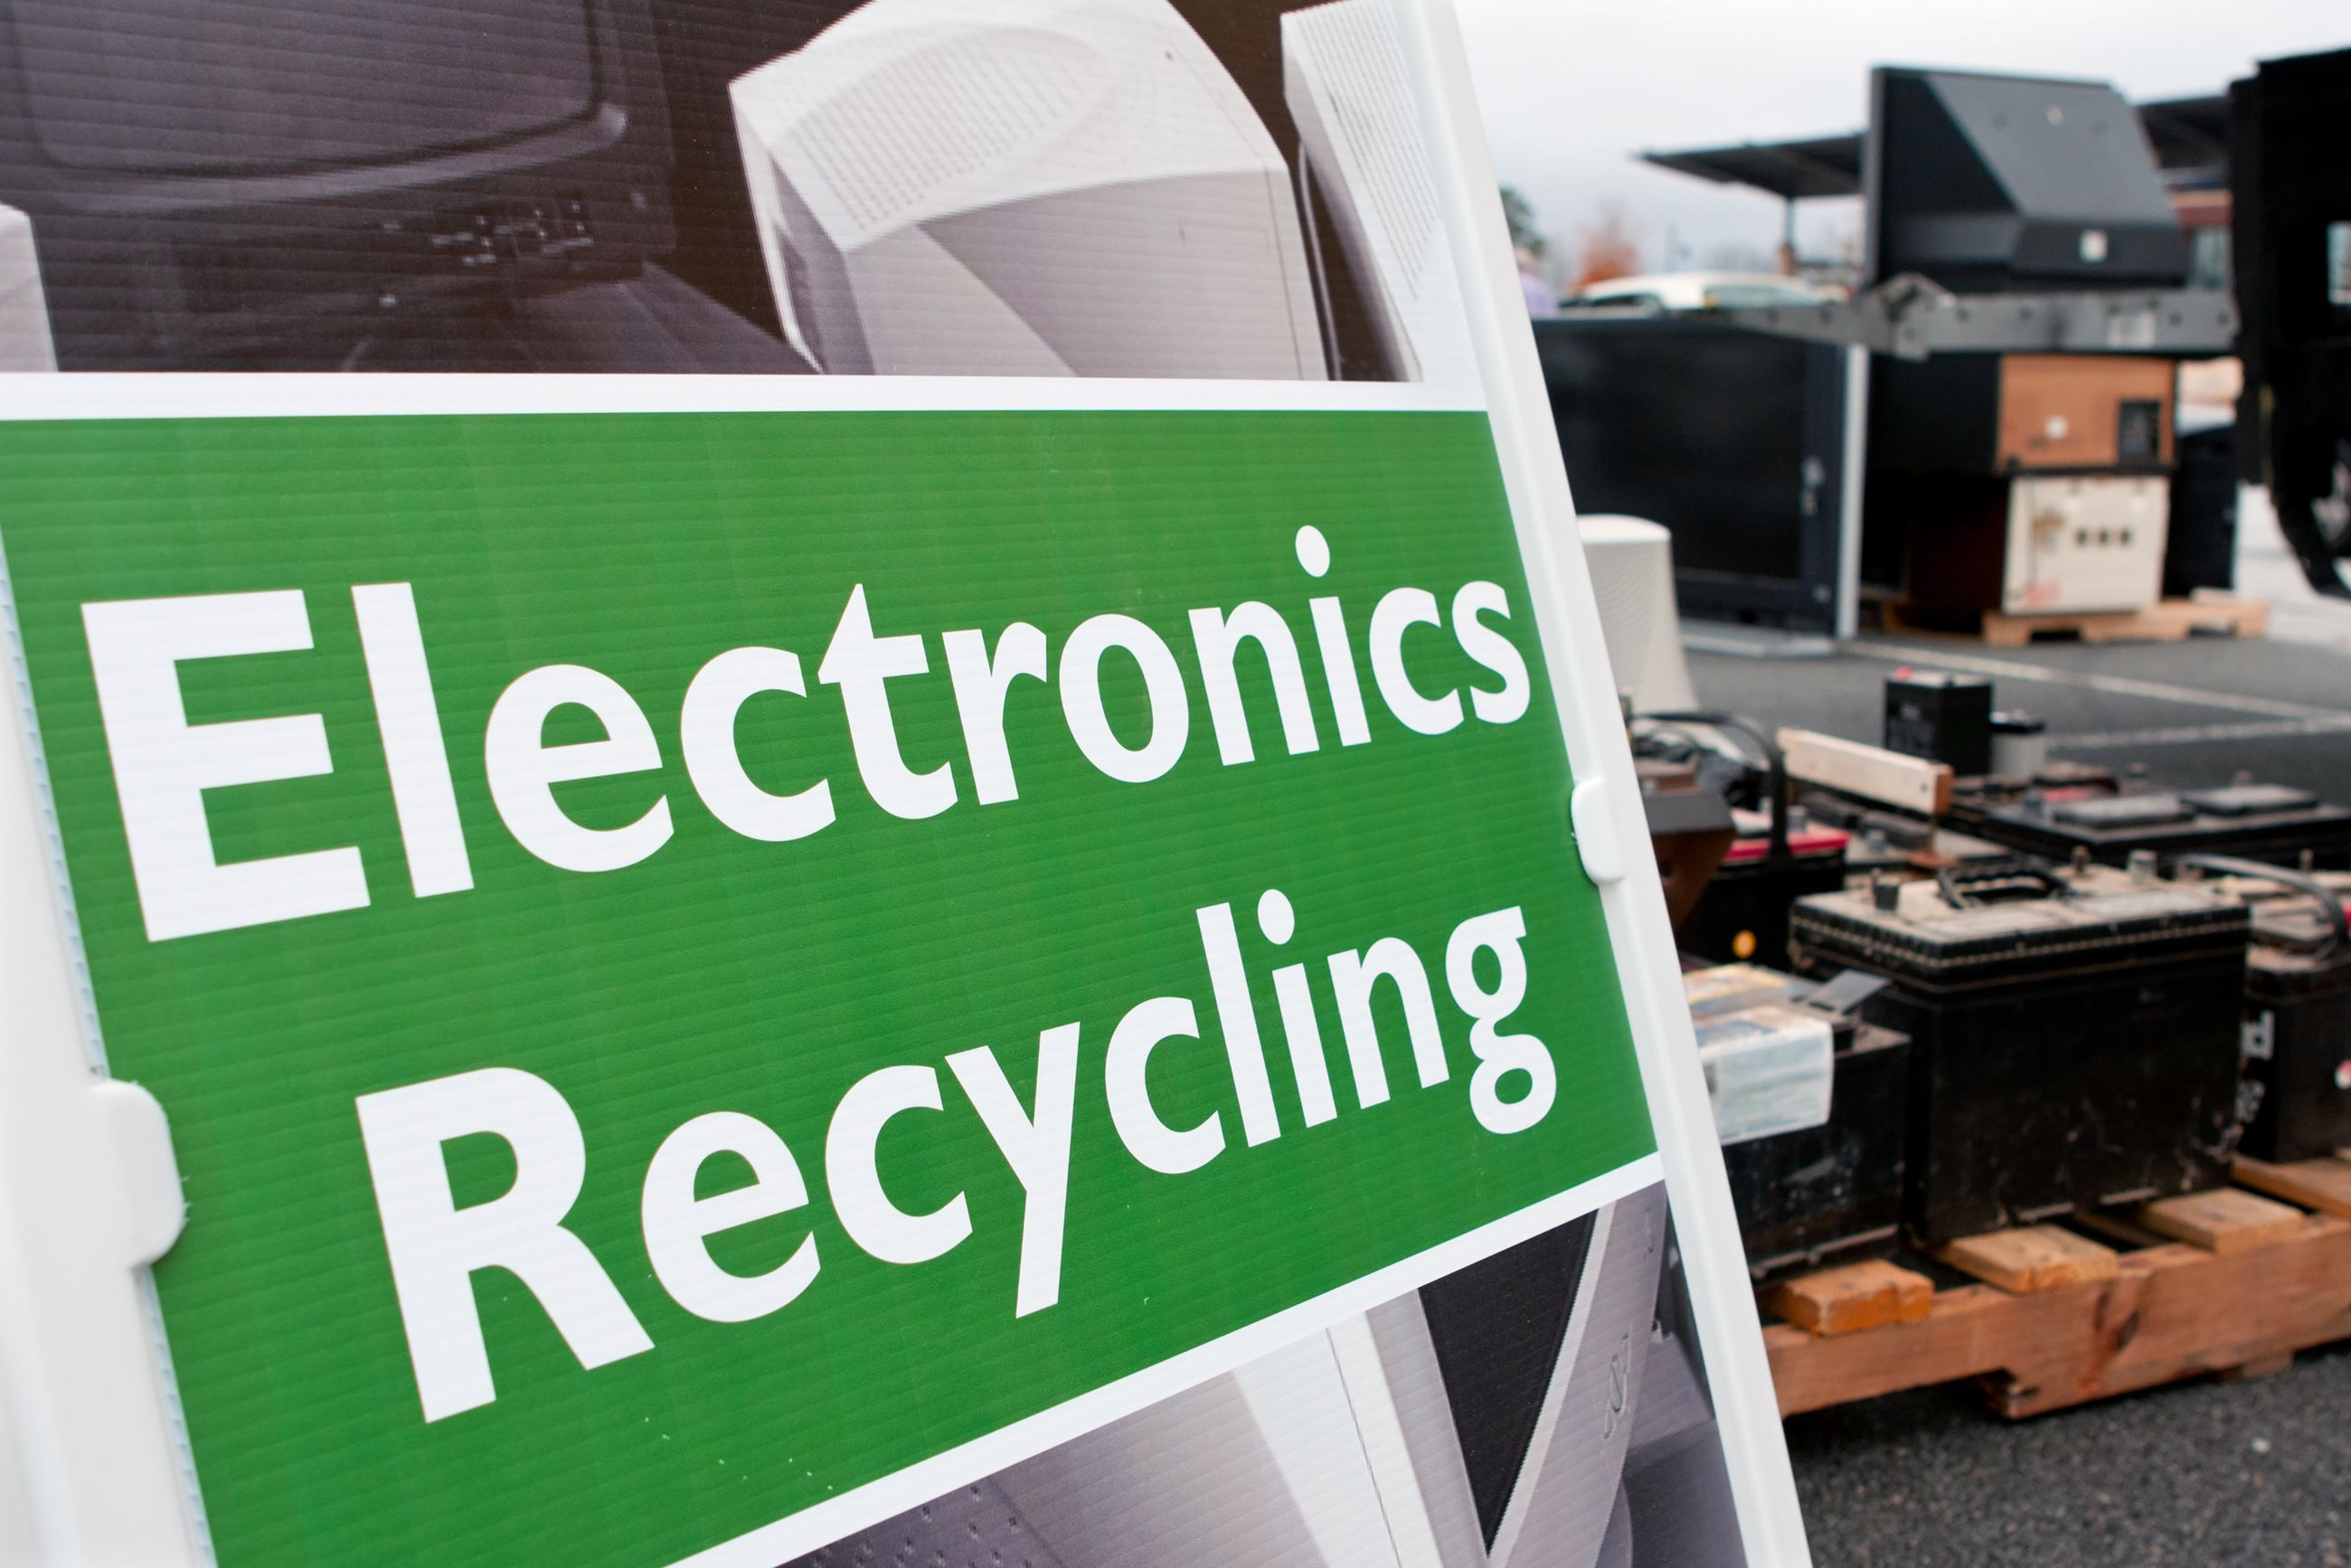 Elmhurst Electronics Recycling Event